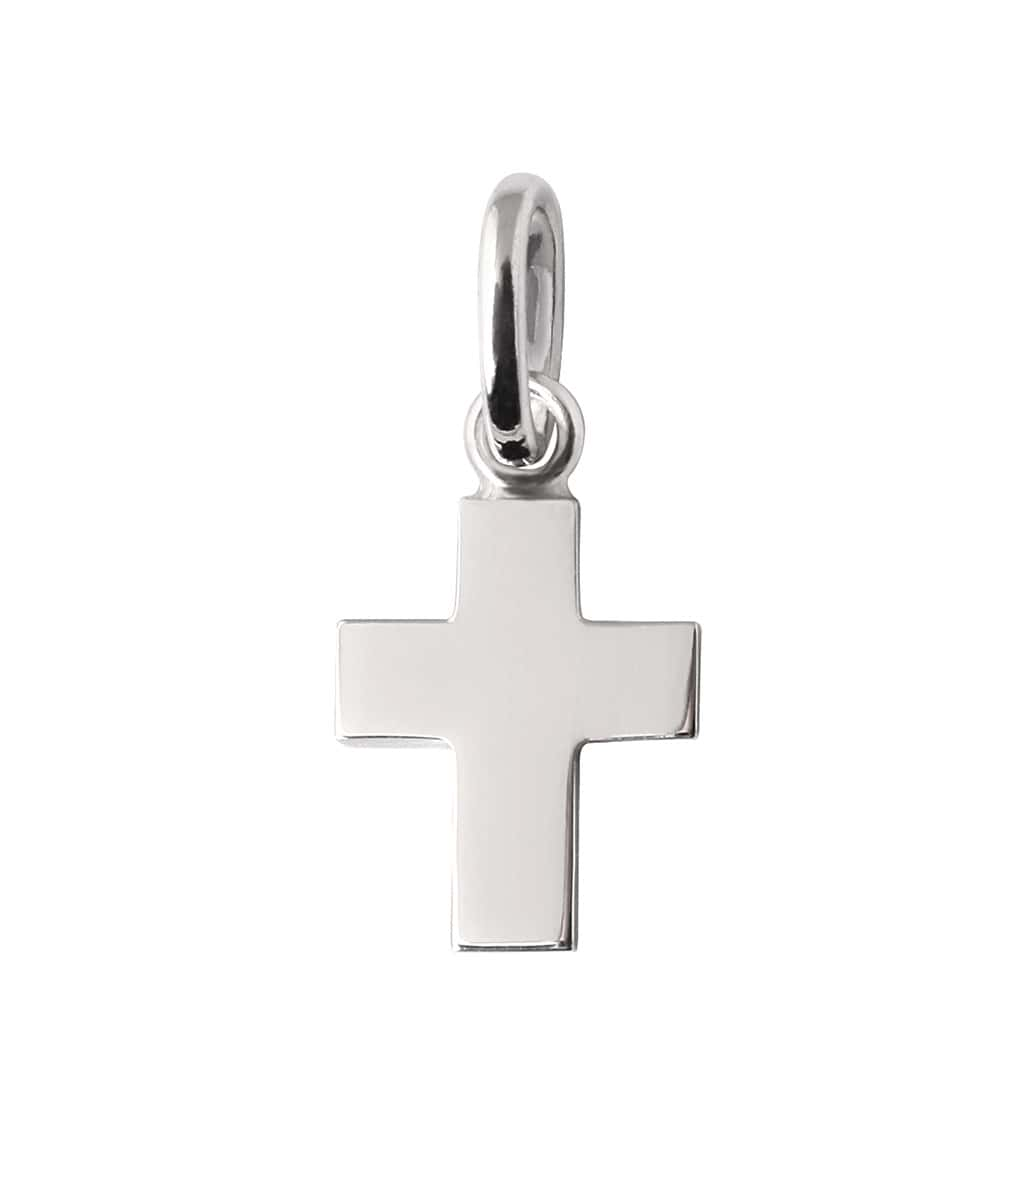 Charm Croix Simple - GIGI CLOZEAU